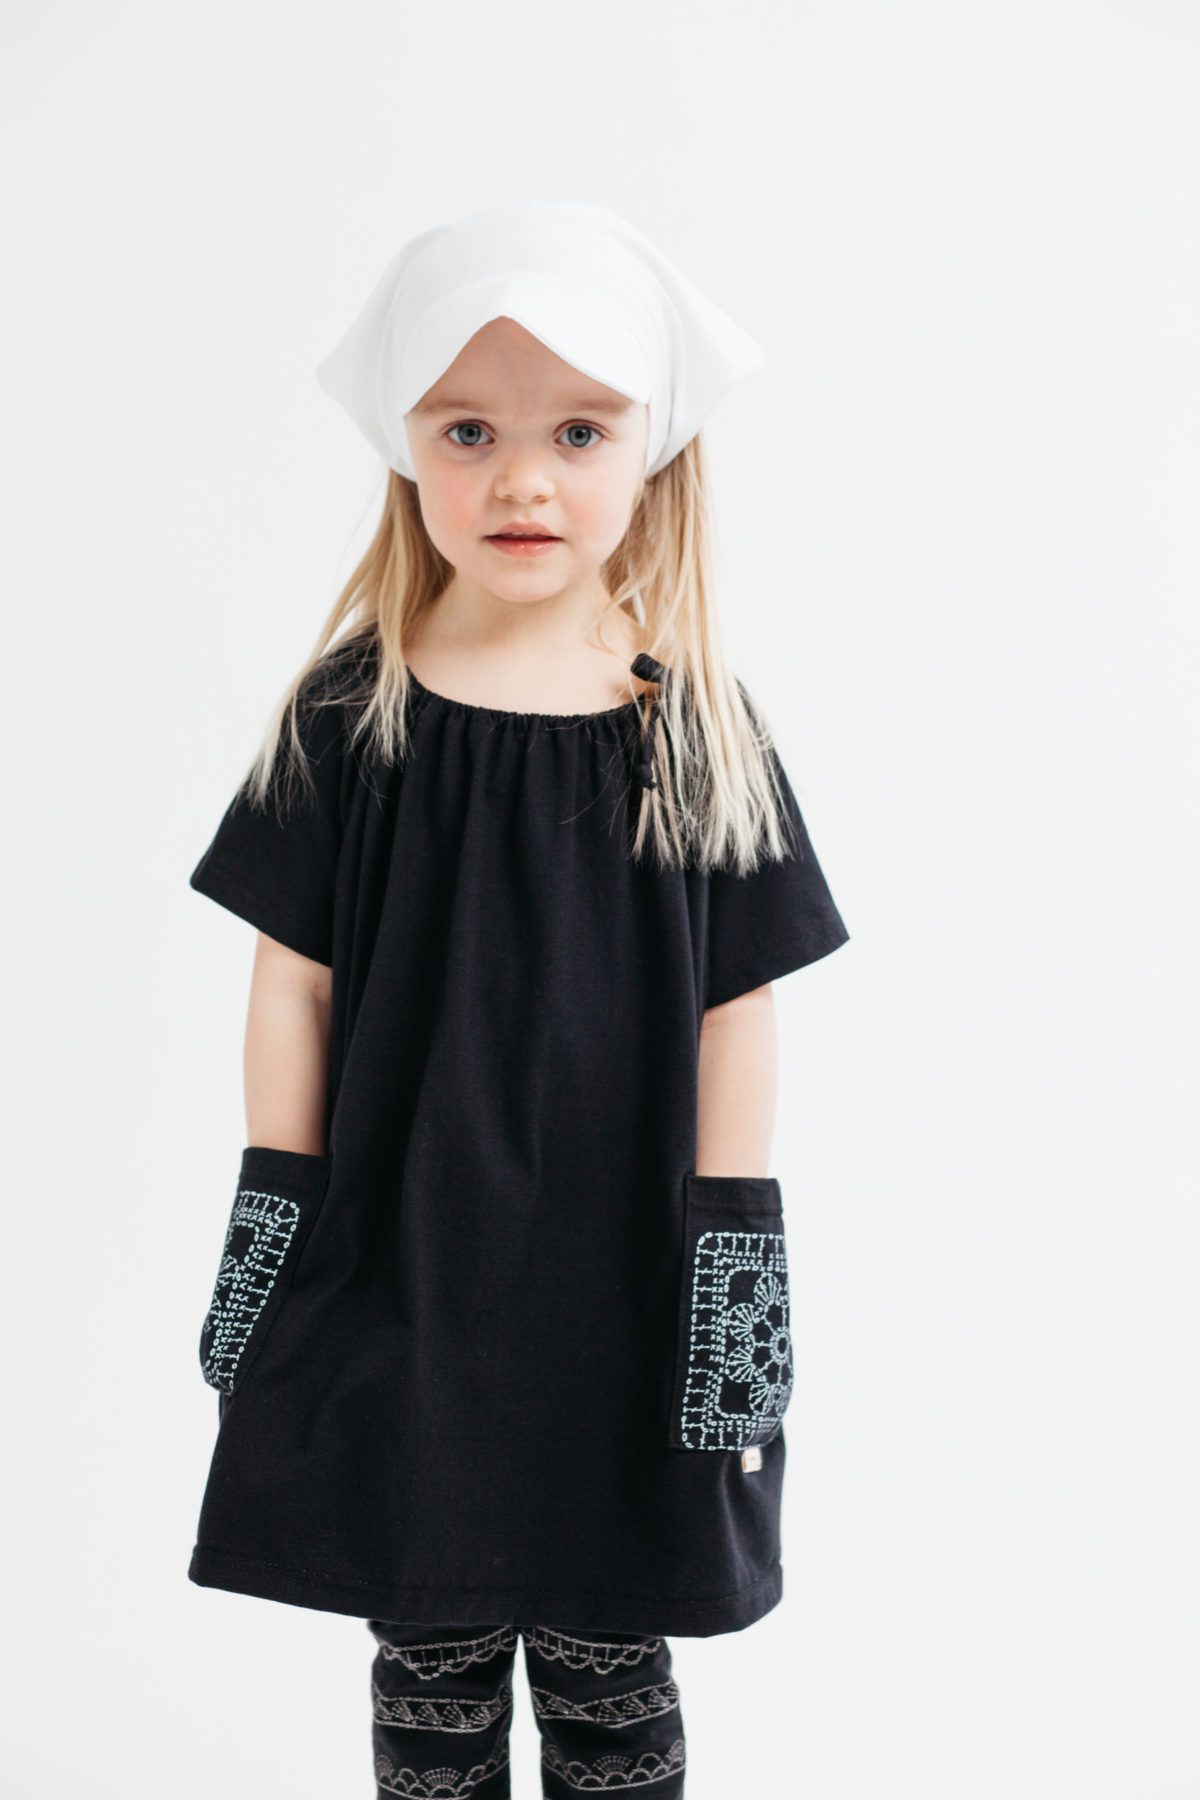 Tuuni & Loru Kuva Elina Manninen #mekko #dress #ecological #fashion #kids #lastenvaatteet